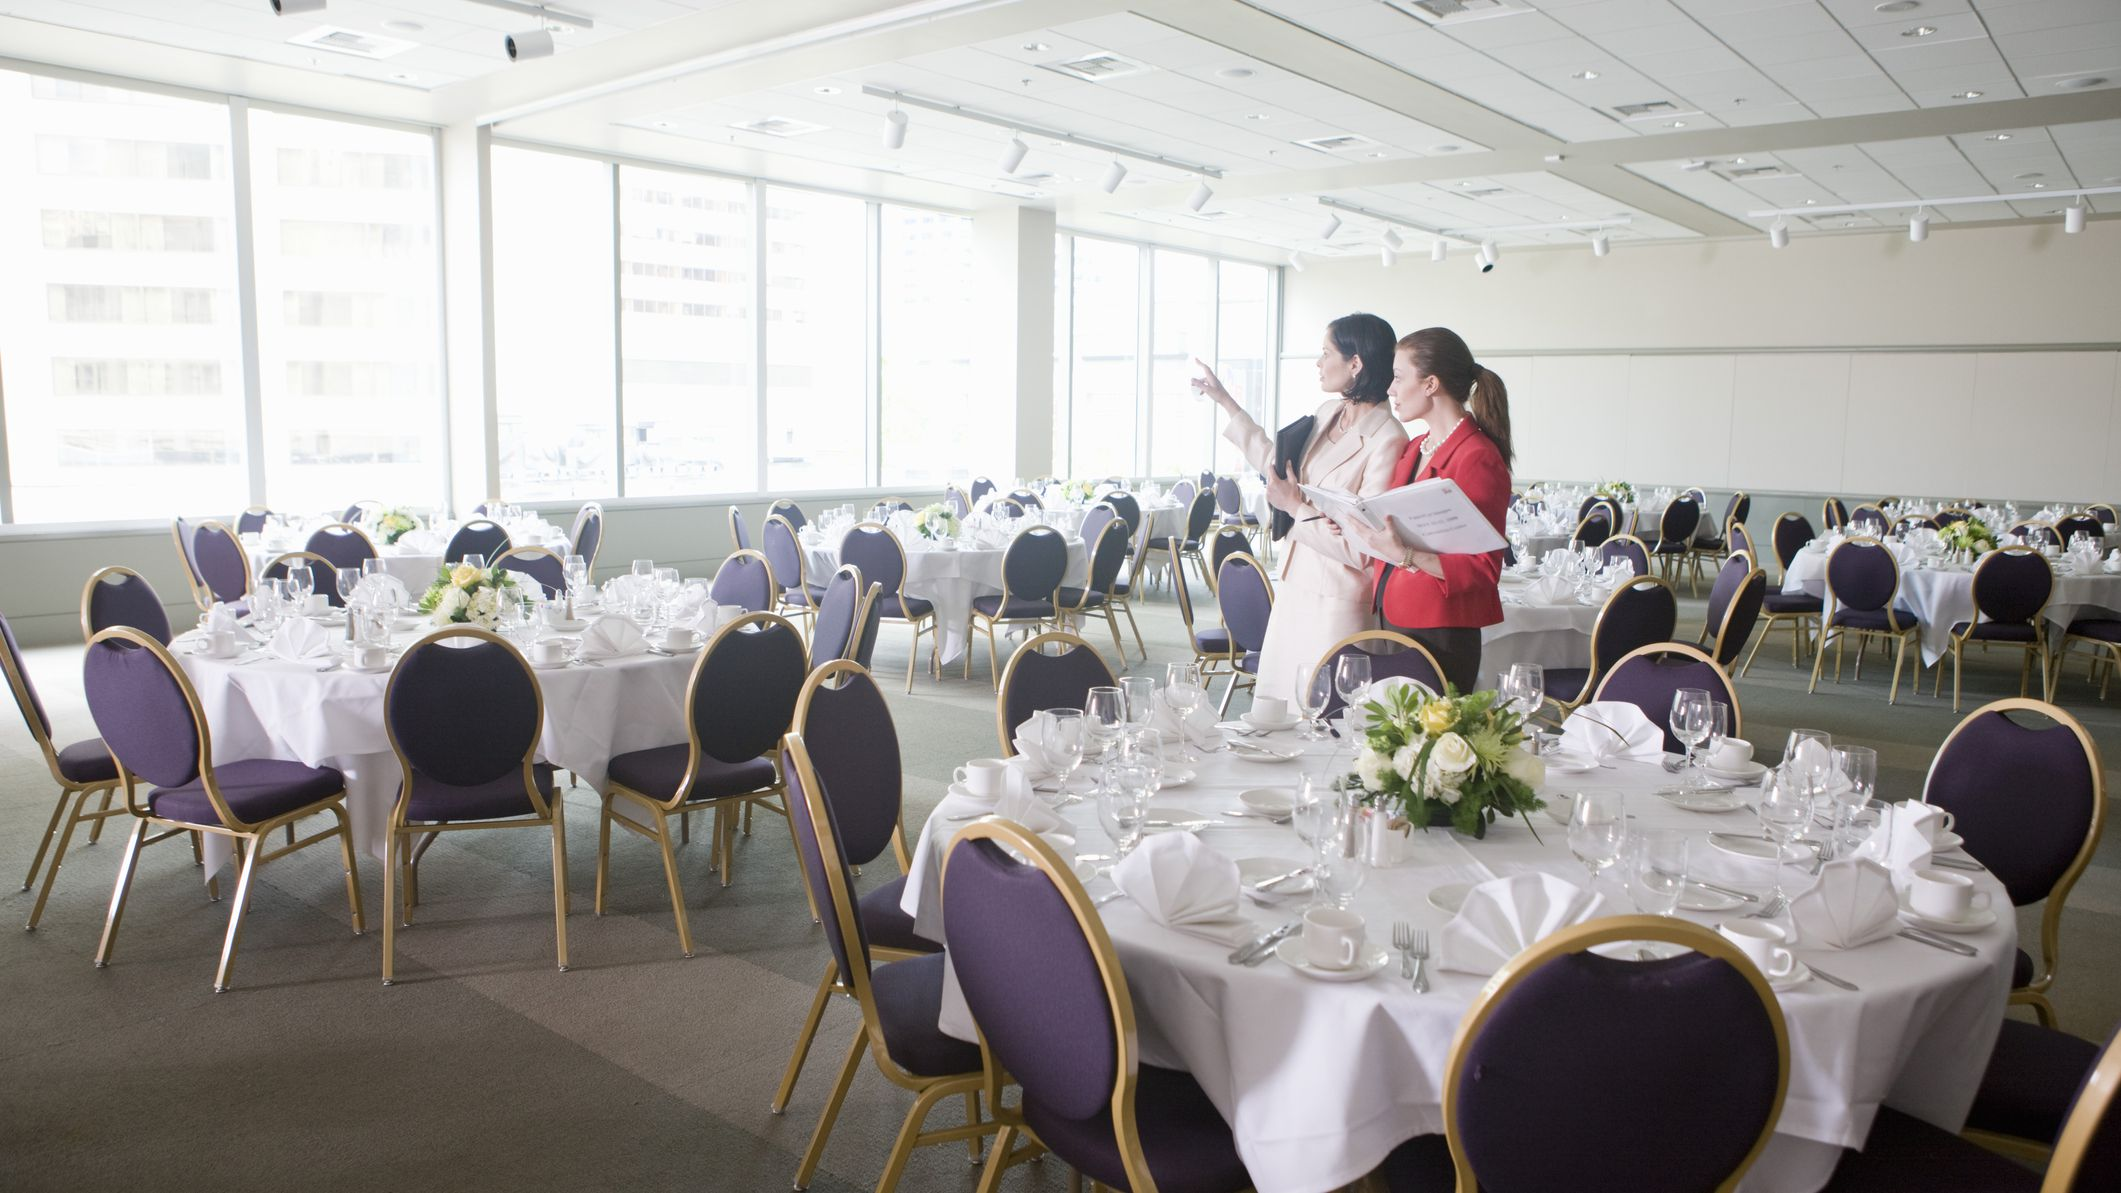 Start Your Event Management Company By Following These Steps